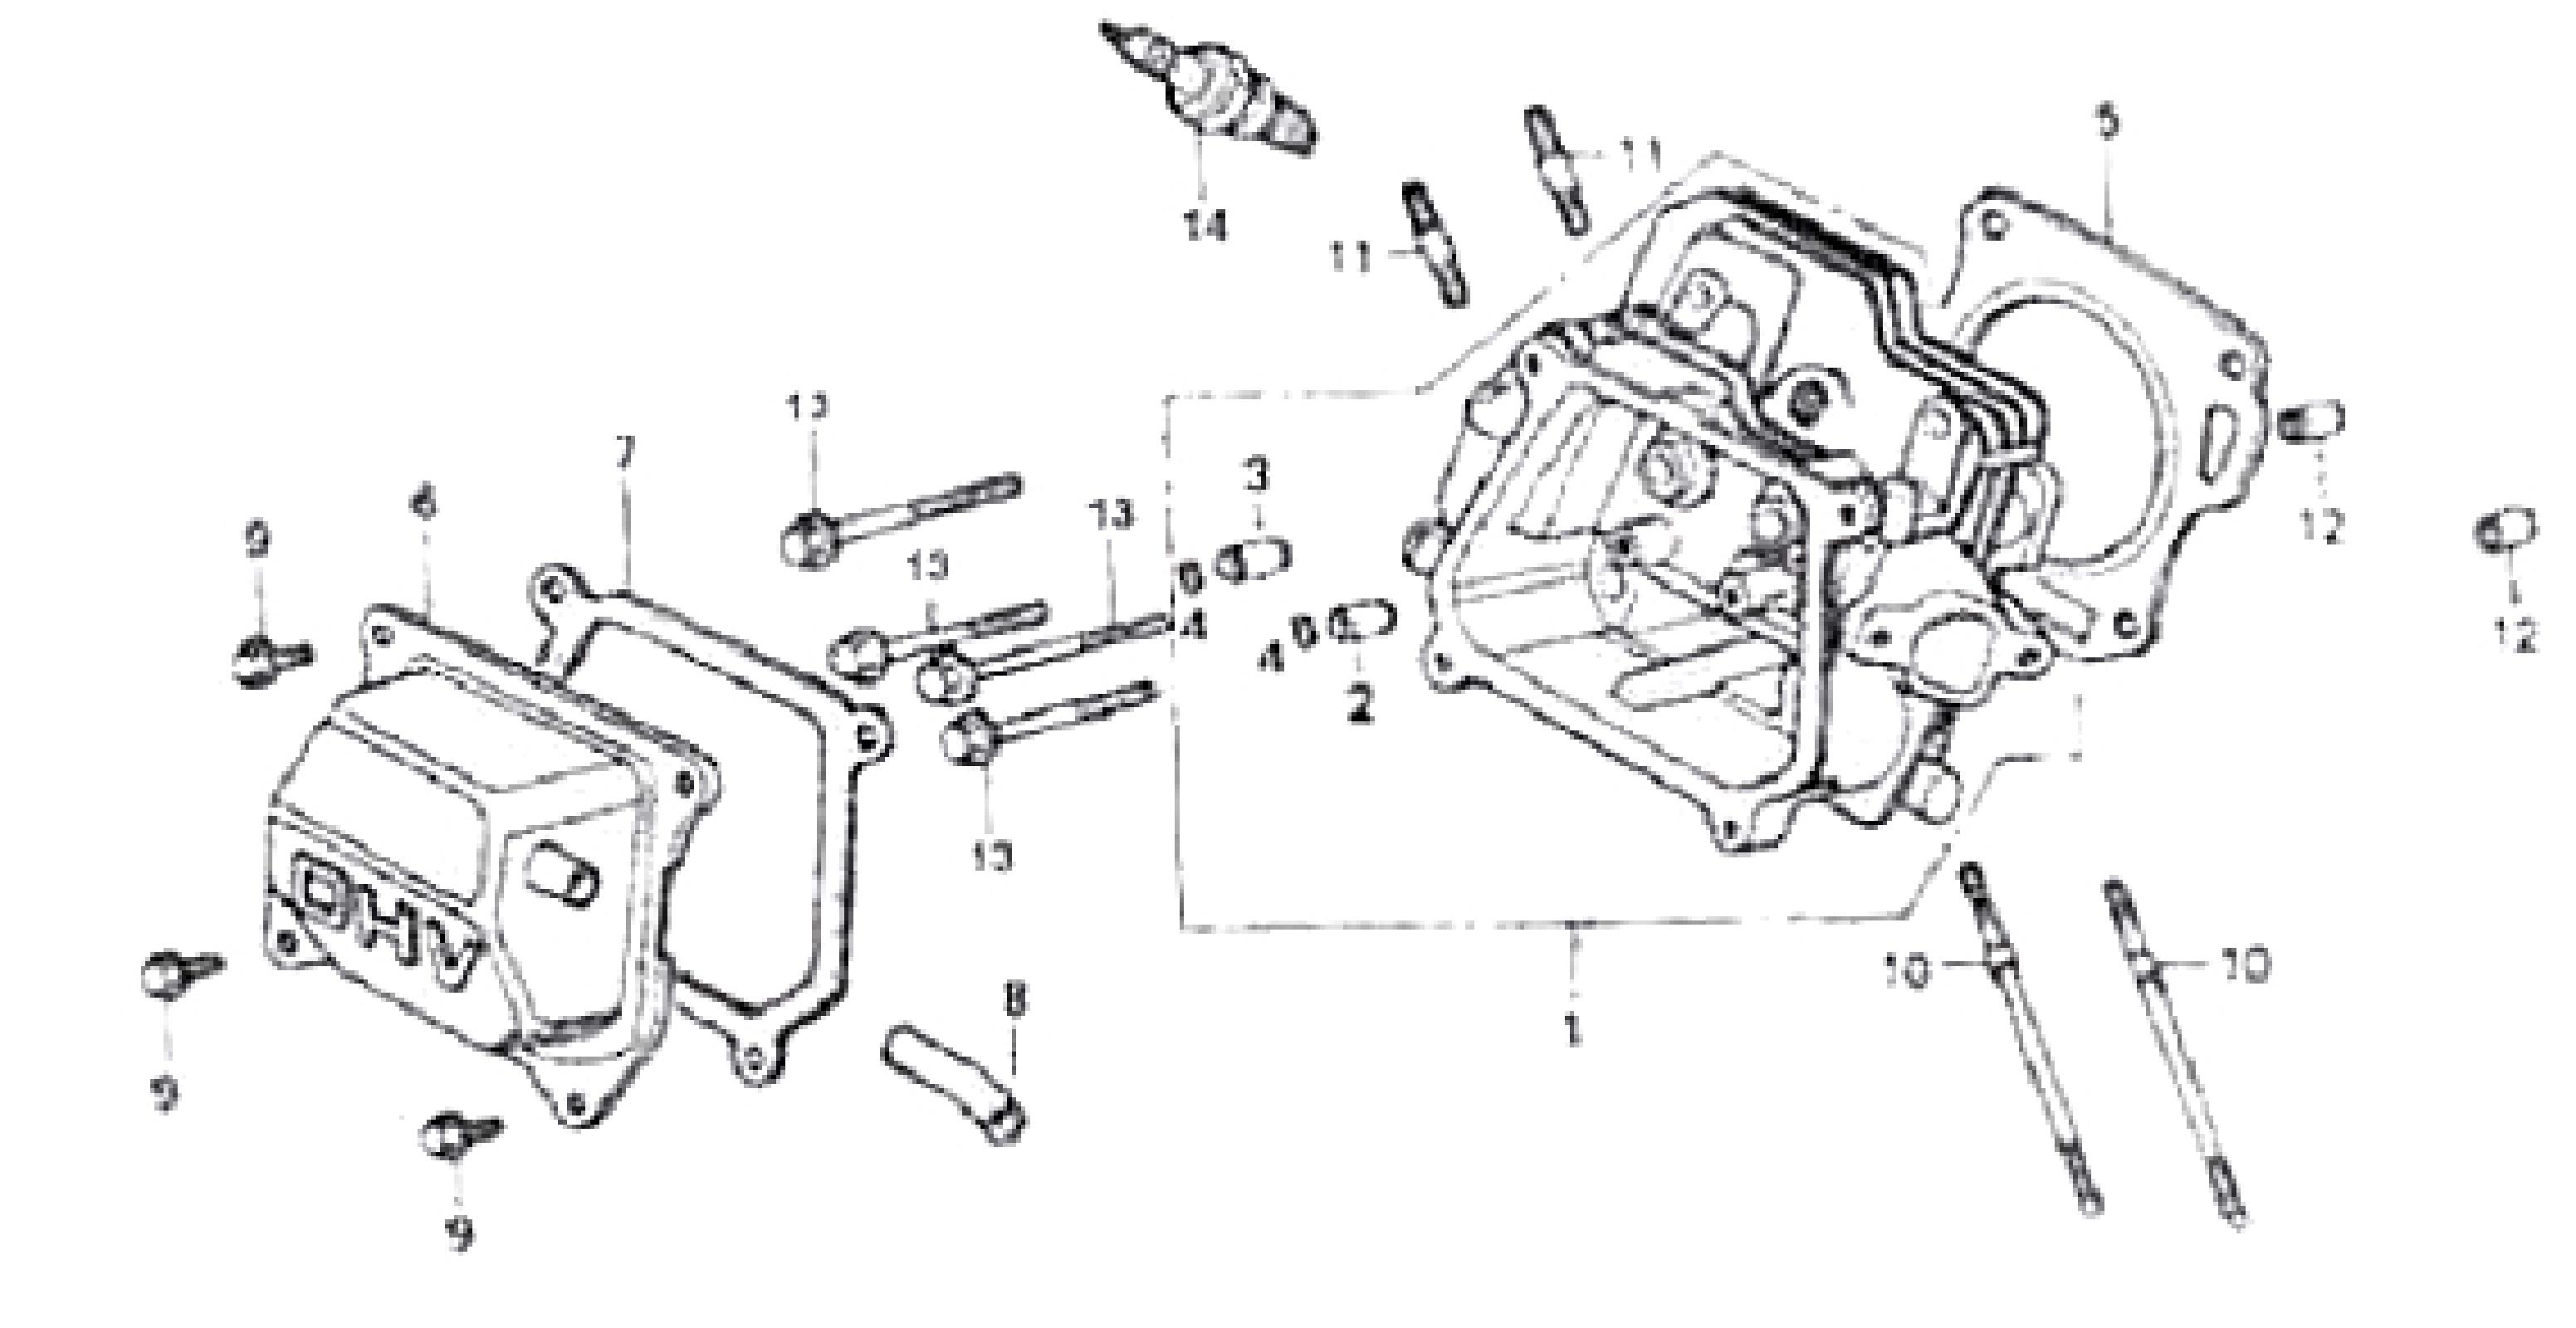 Gc190 Honda Engine Pump Diagram, Gc190, Free Engine Image